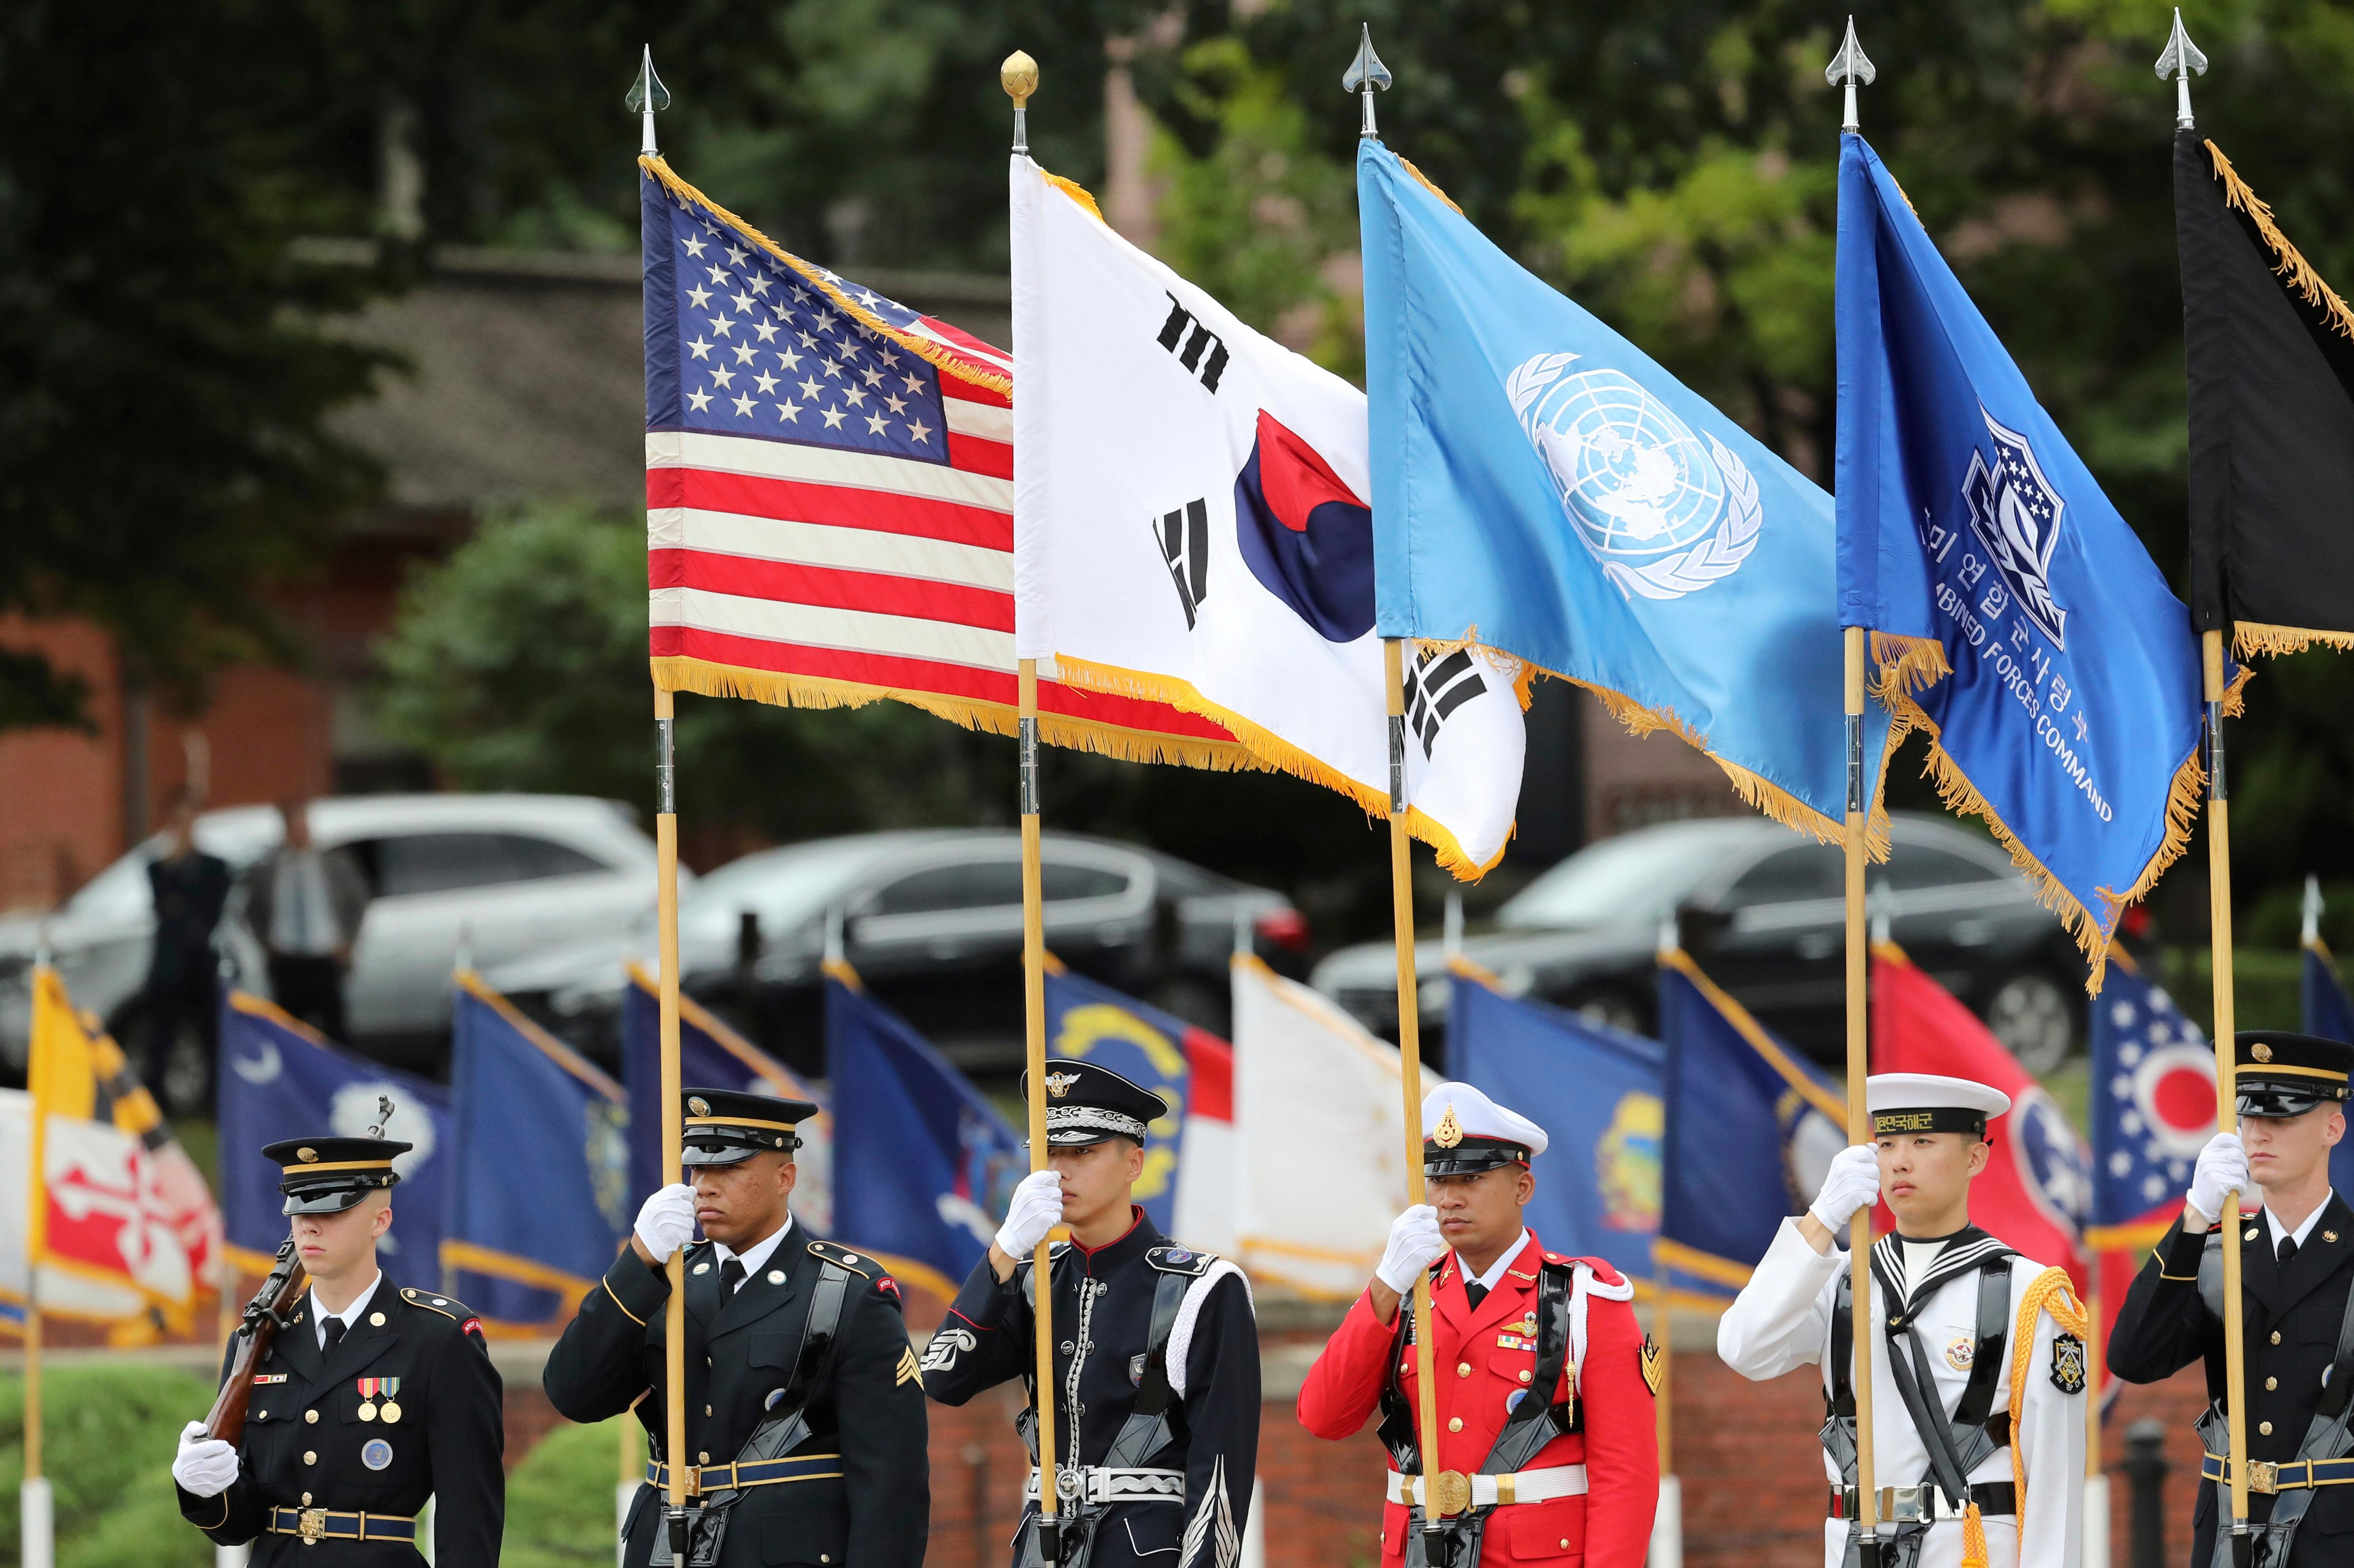 U.N. Command honor guards carry flags of the United States, the United Nations and South Korea during a change of command and change of responsibility ceremony for Deputy Commander of the South Korea-U.S. Combined Force Command at Yongsan Garrison, a U.S. military base, in Seoul, South Korea, Friday, Aug. 11, 2017. (AP Photo/Lee Jin-man)